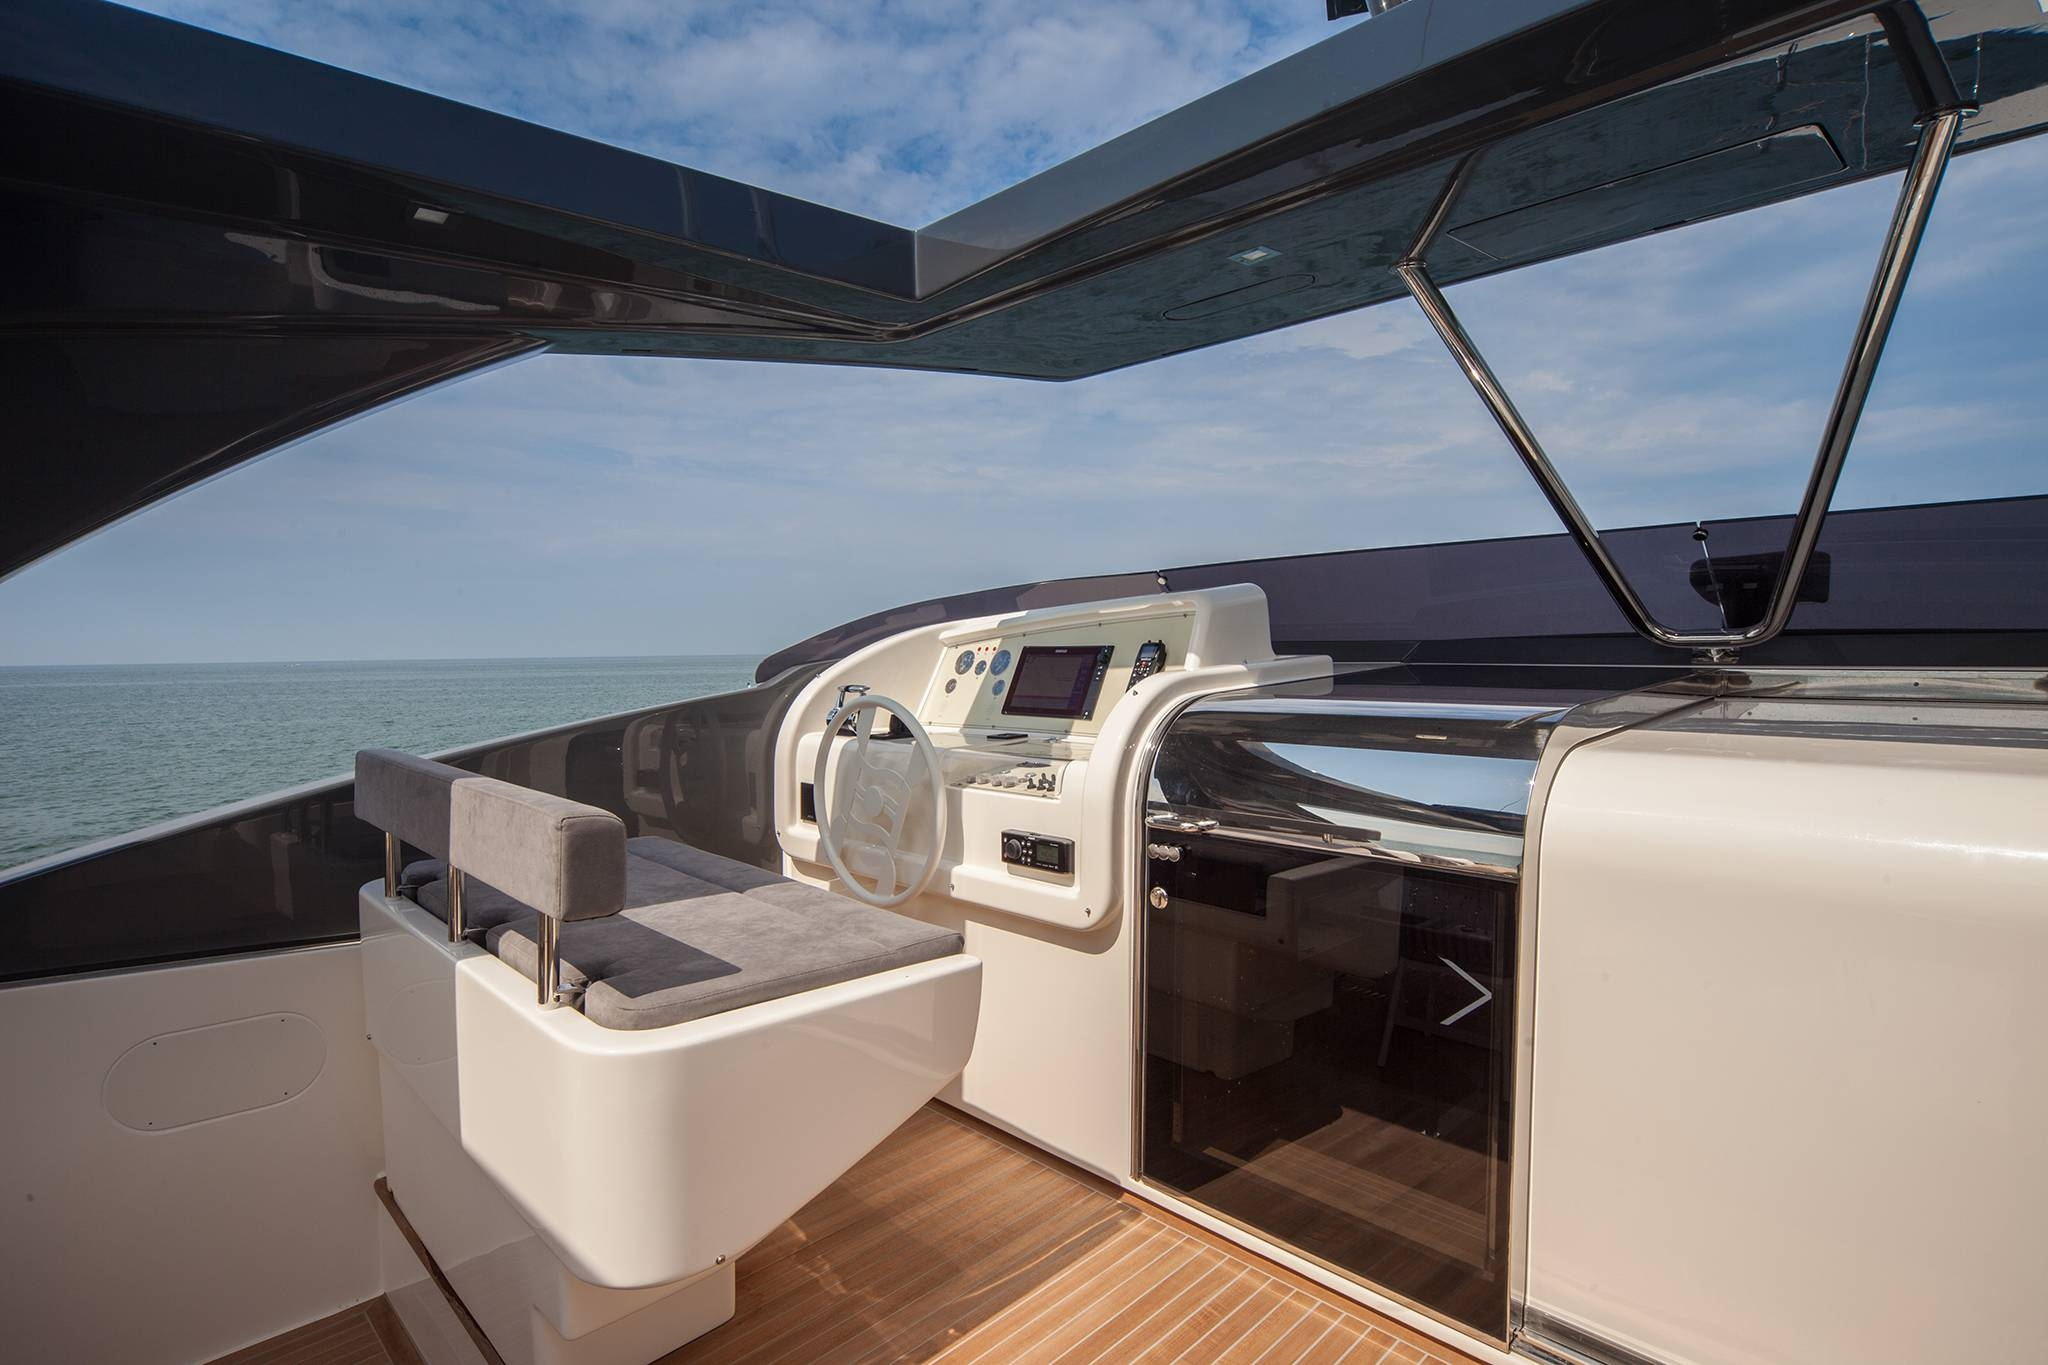 2016 Ferretti Yachts 960 Flybridge Seating